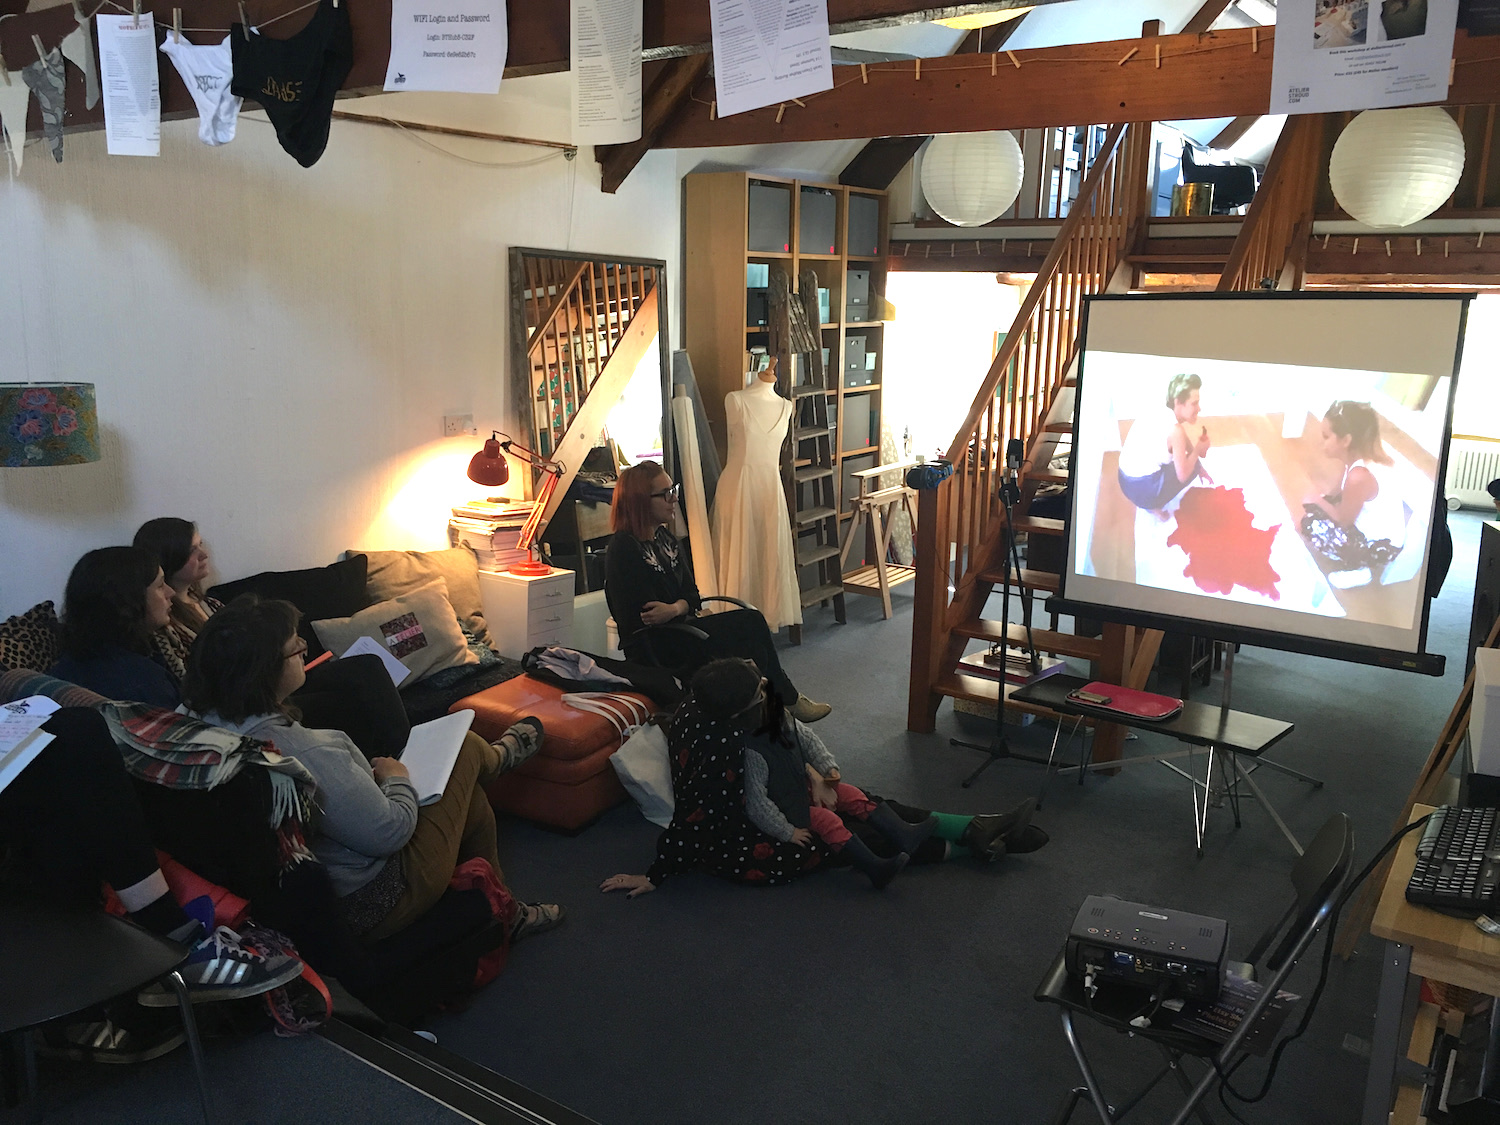 It Takes a Village: Models for Mother Artists event at Atelier Stroud, 23 April 2017, film viewing during 'Mother House' session with Dyana Gravina and Amy Dignam from ProCreate project. Photo: the Women's Art Activation System (WAAS)